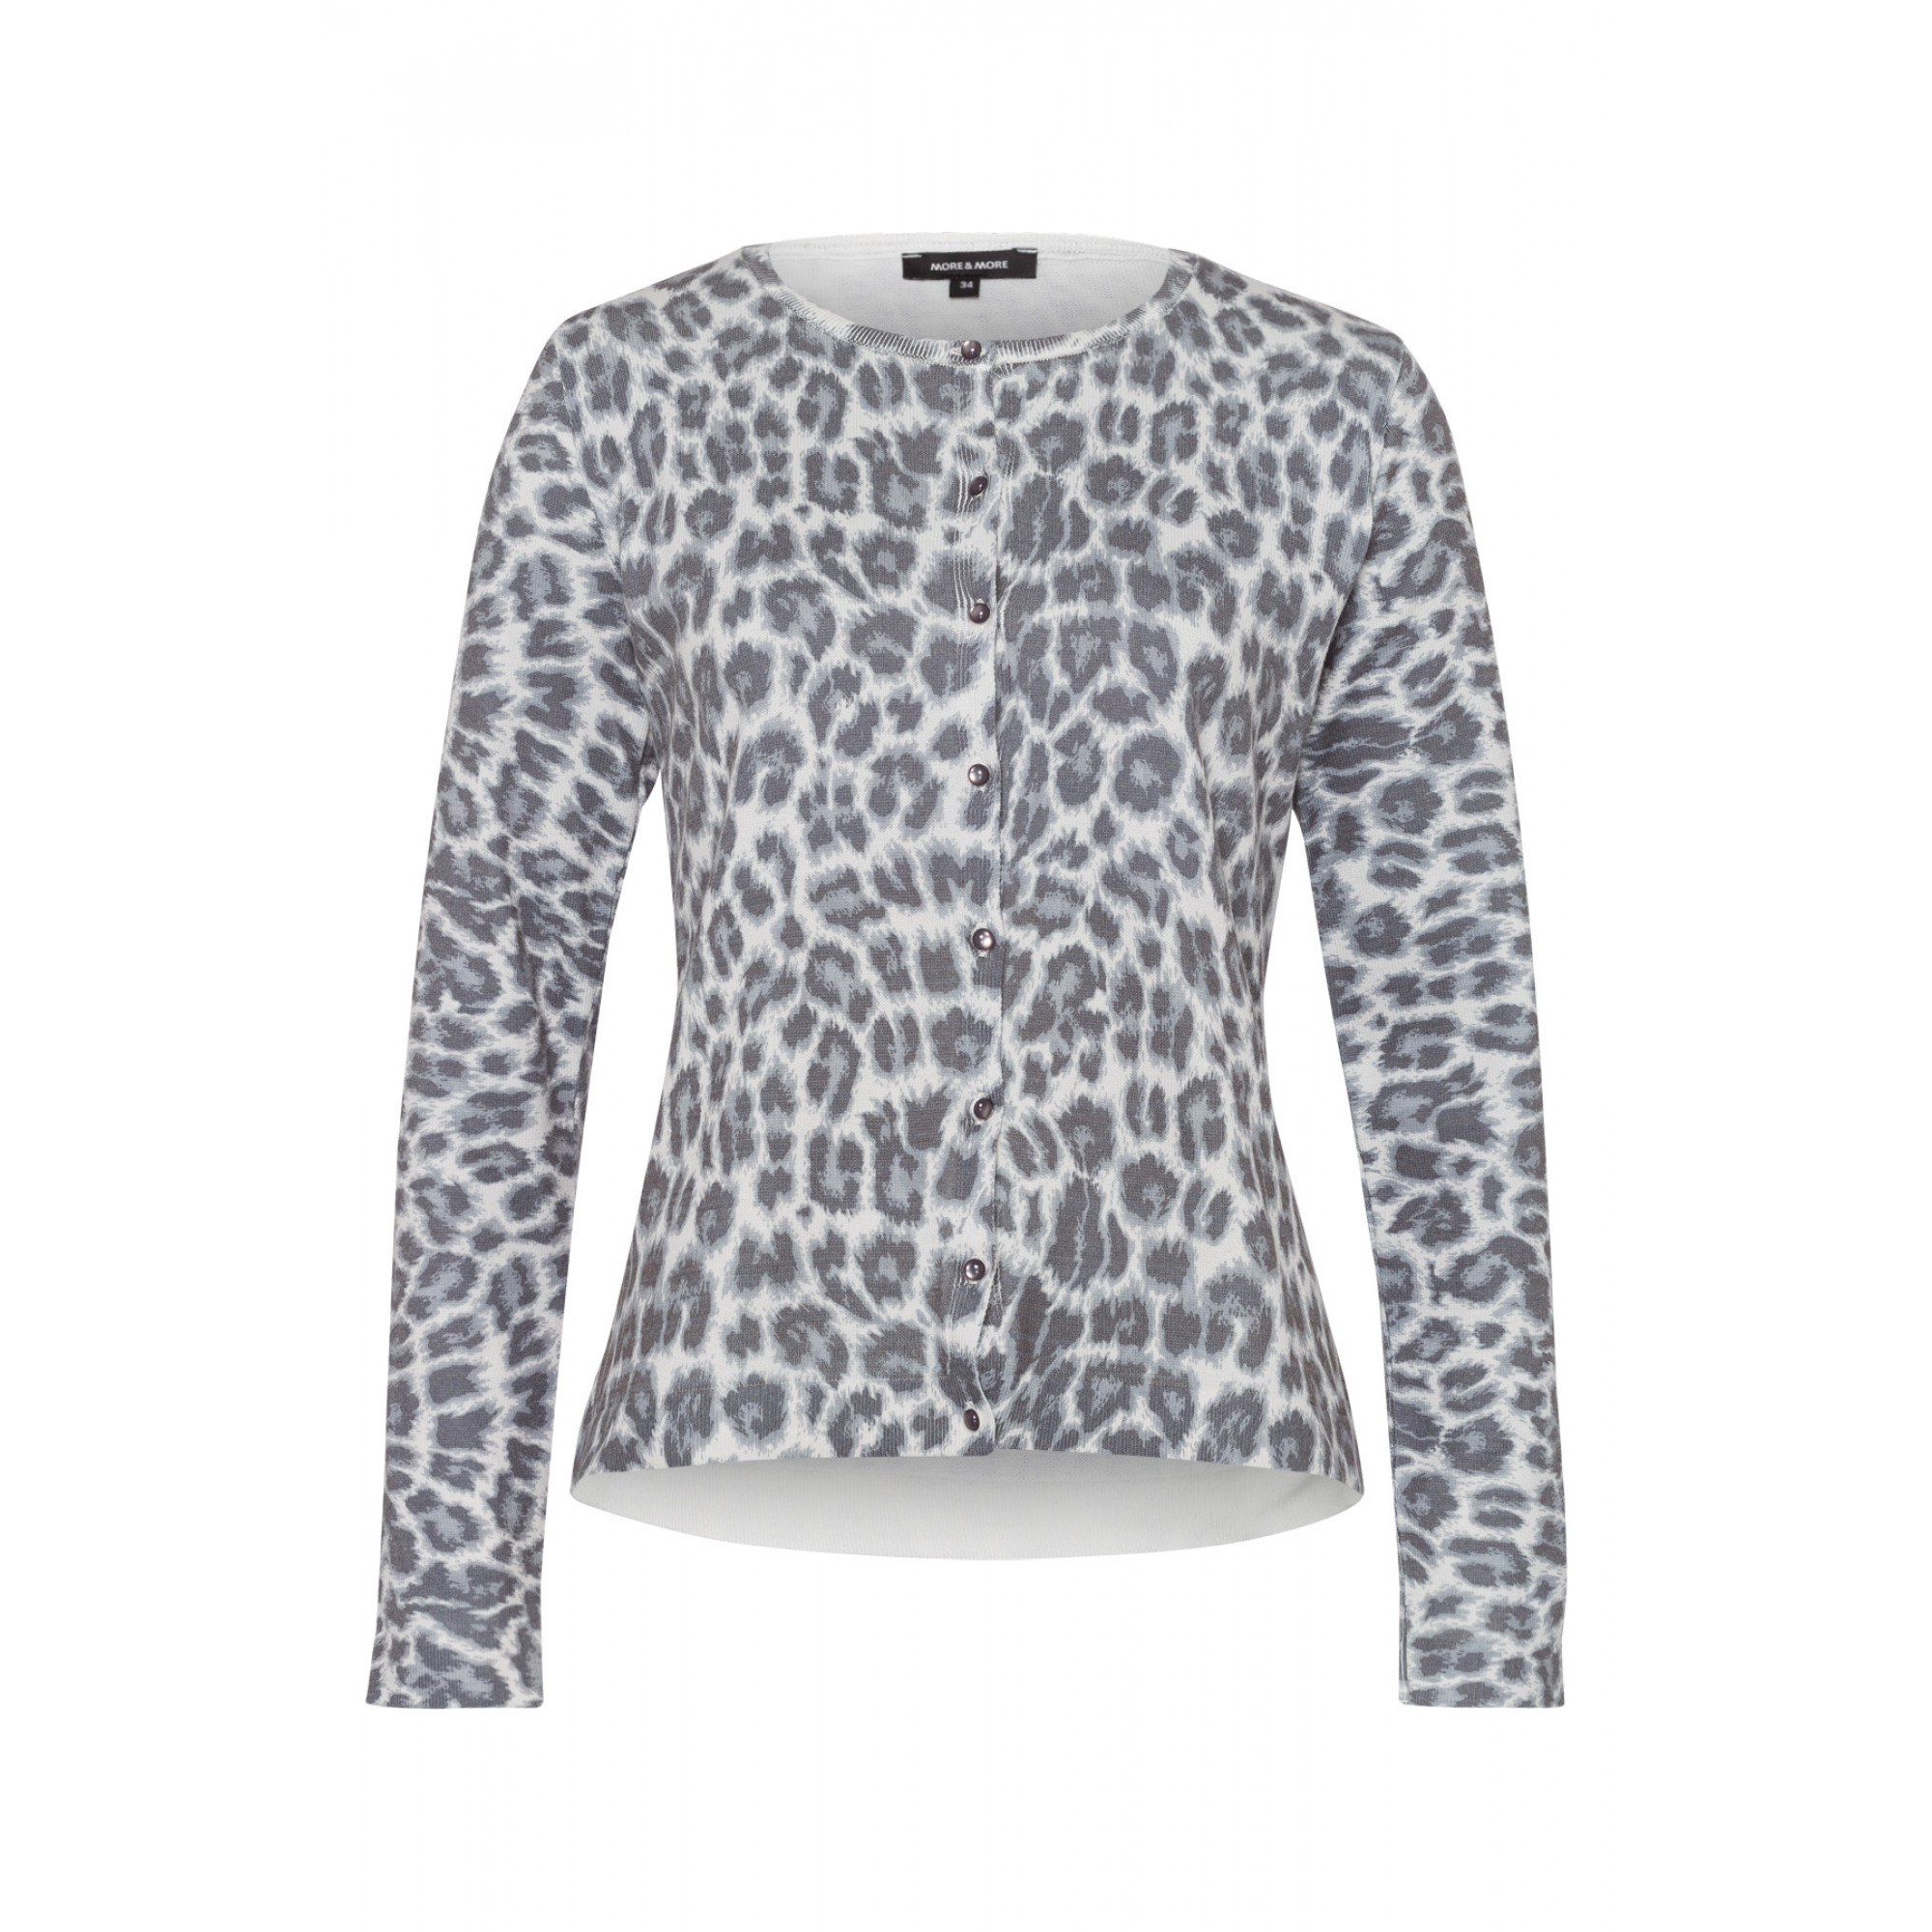 Cardigan, Leoprint 91951200-3041 1